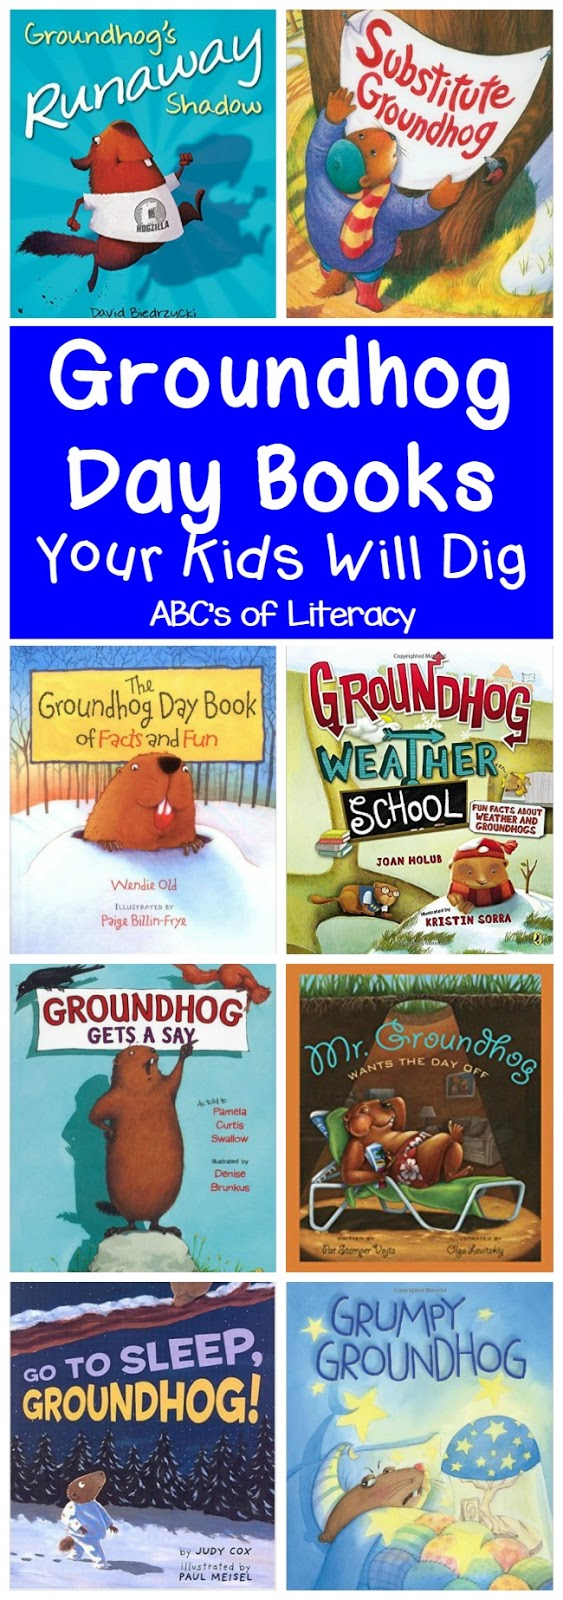 Abc scrapbook ideas list - Abc S Of Literacy Put Together A Great List Of Books To Help Celebrate Groundhog Day